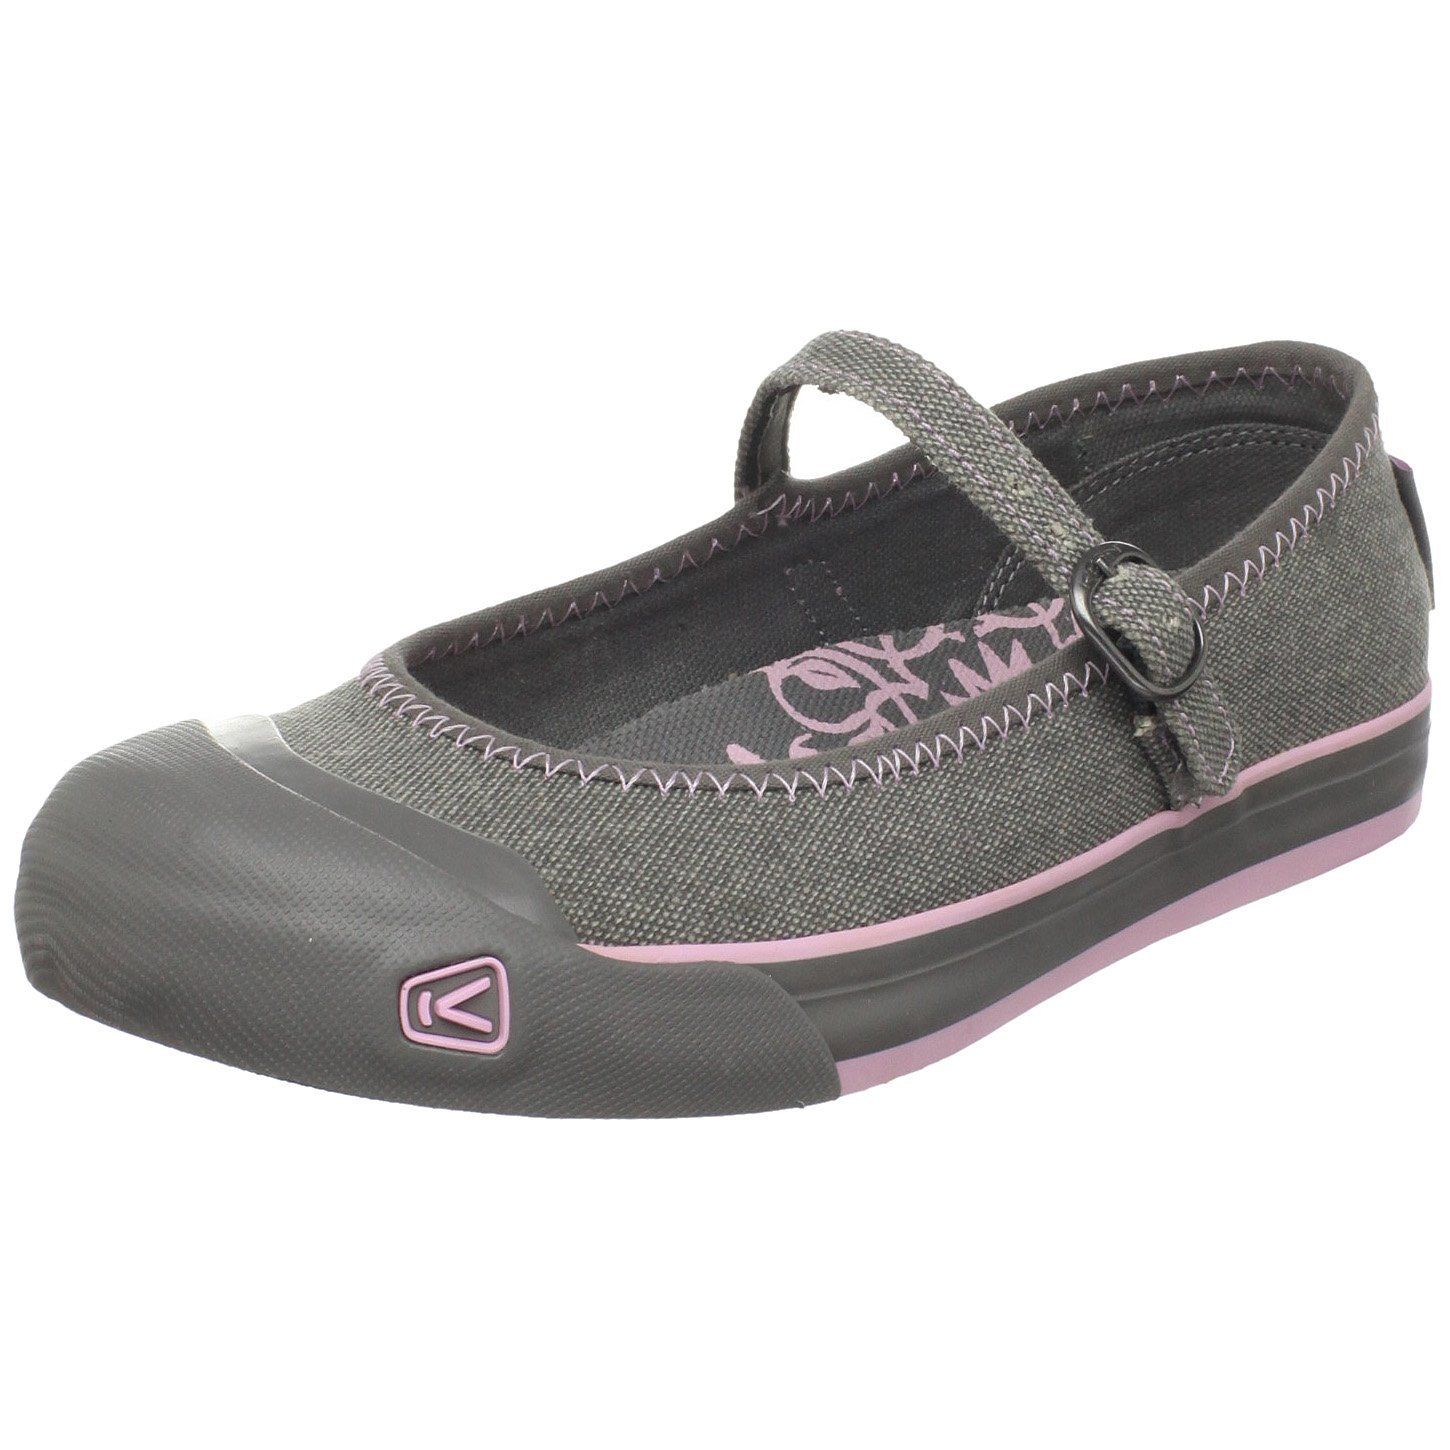 Keen Shoes Women Collection Wear